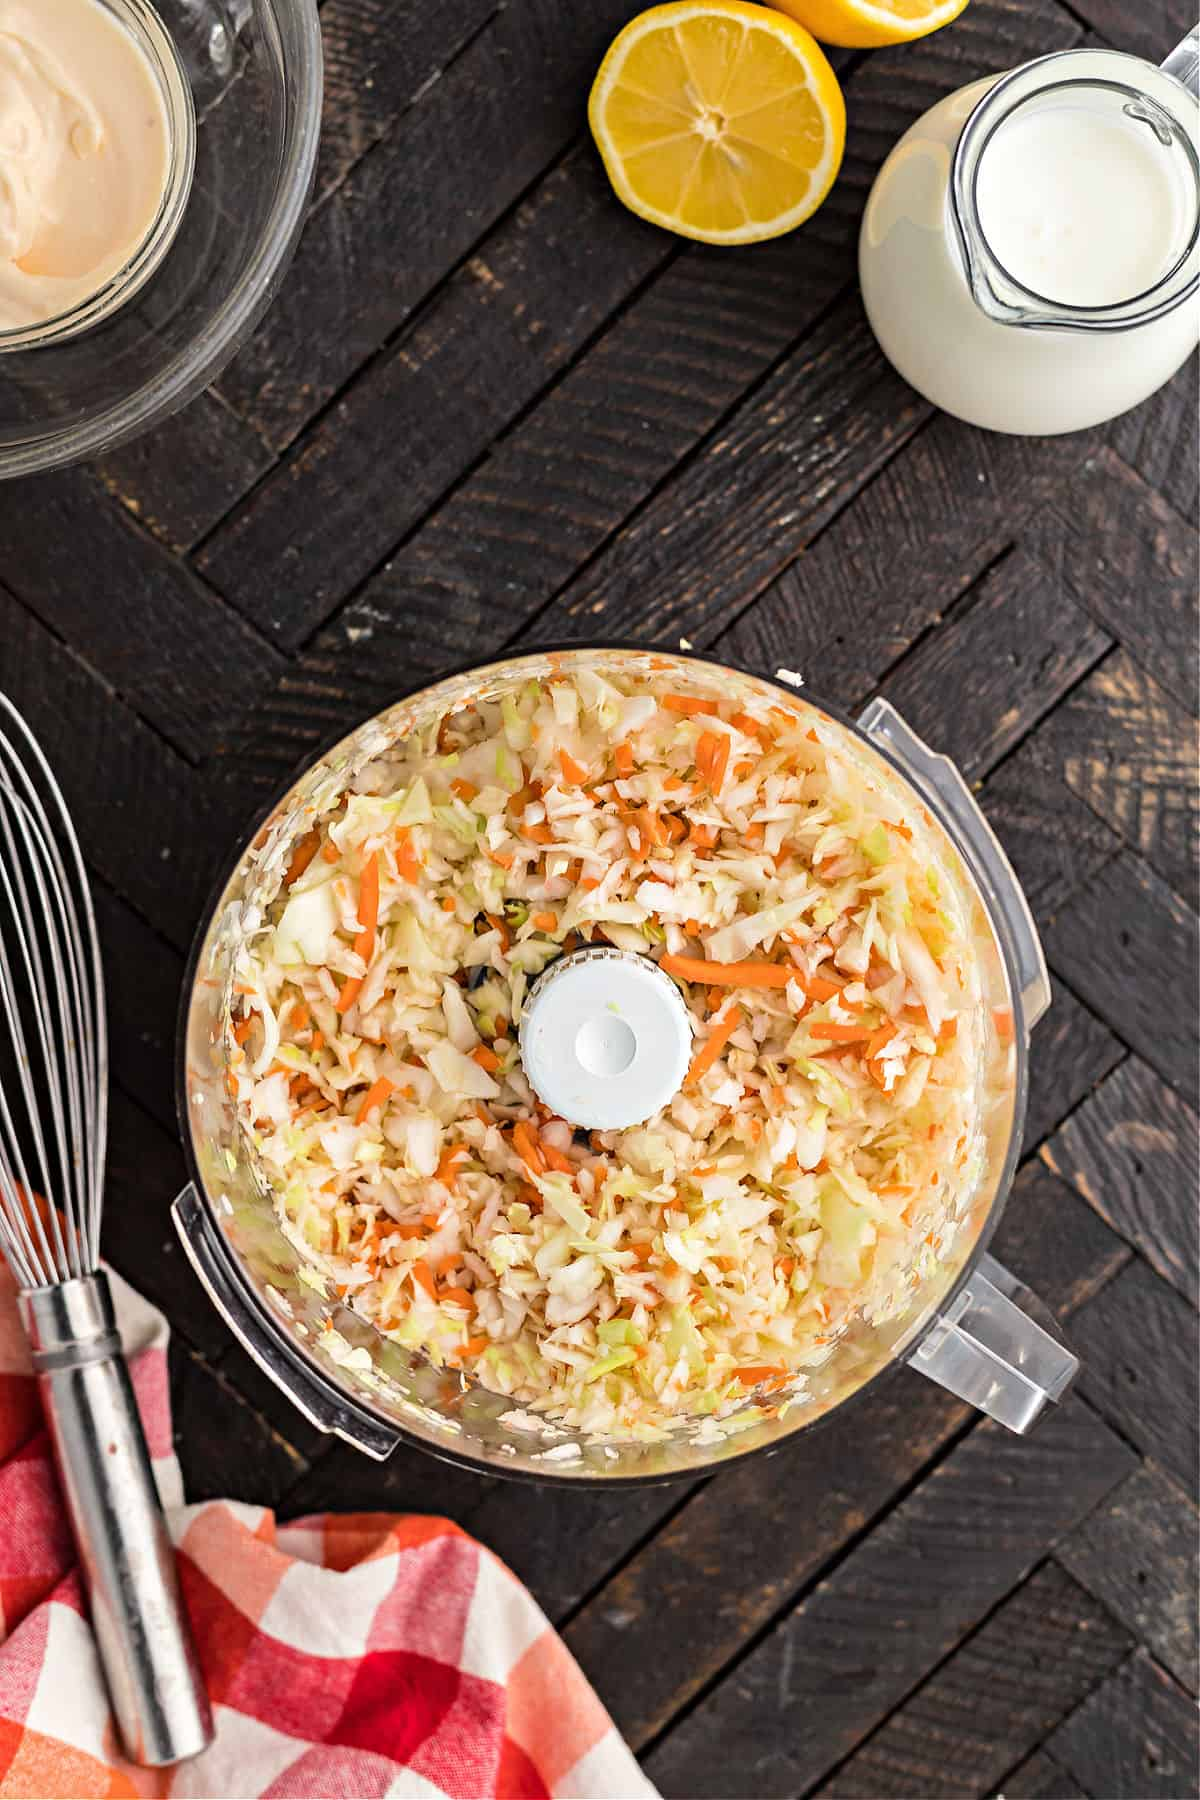 Carrots and cabbage in food processor shredded.